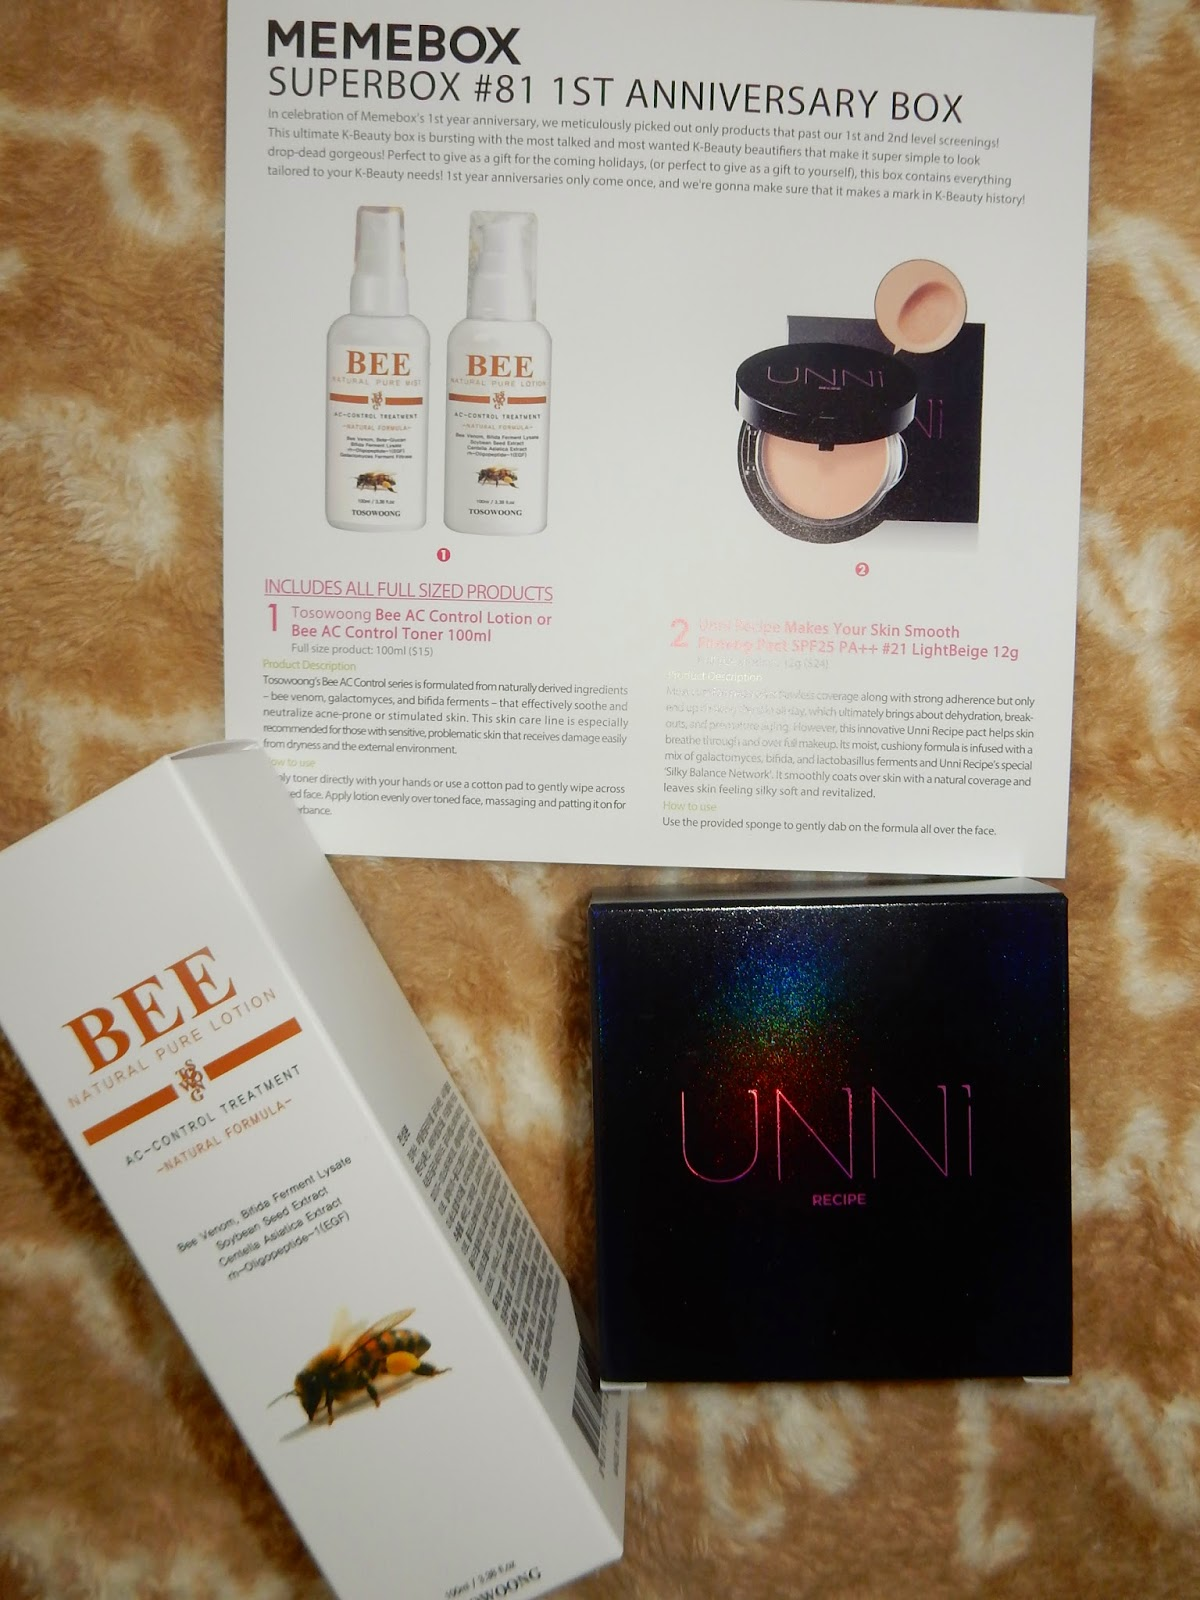 Chicosmummy February 2015 Secret Key Honey Bee Ac Control Mist 100ml For Sensitive Skin I Had All The Serums In This Range And Swapped Them But Kept Miracle Cream Love Some Items Not